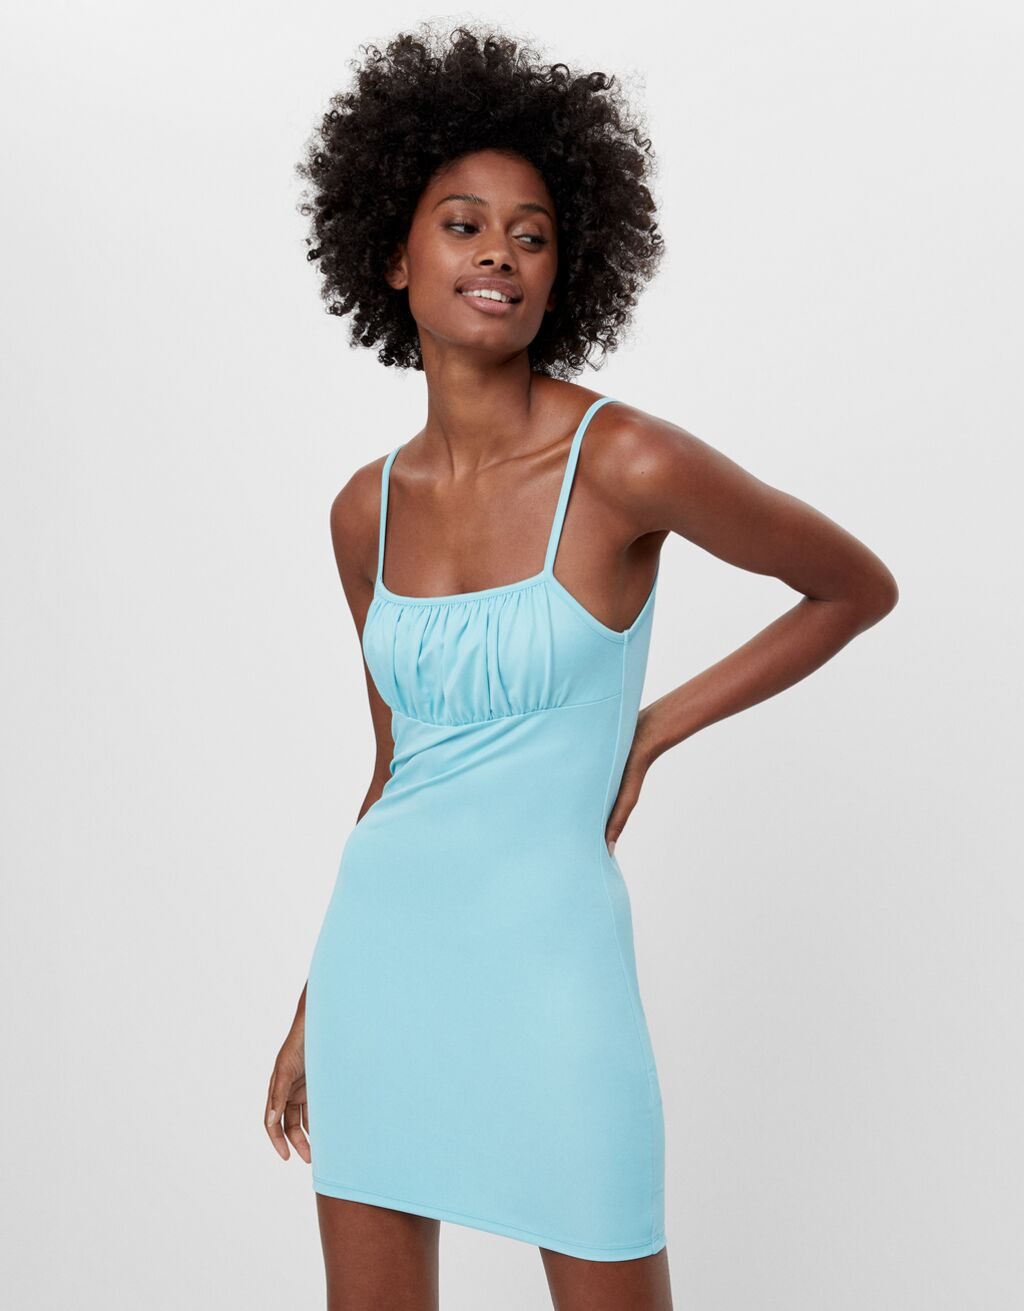 Short dress with a gathered neckline